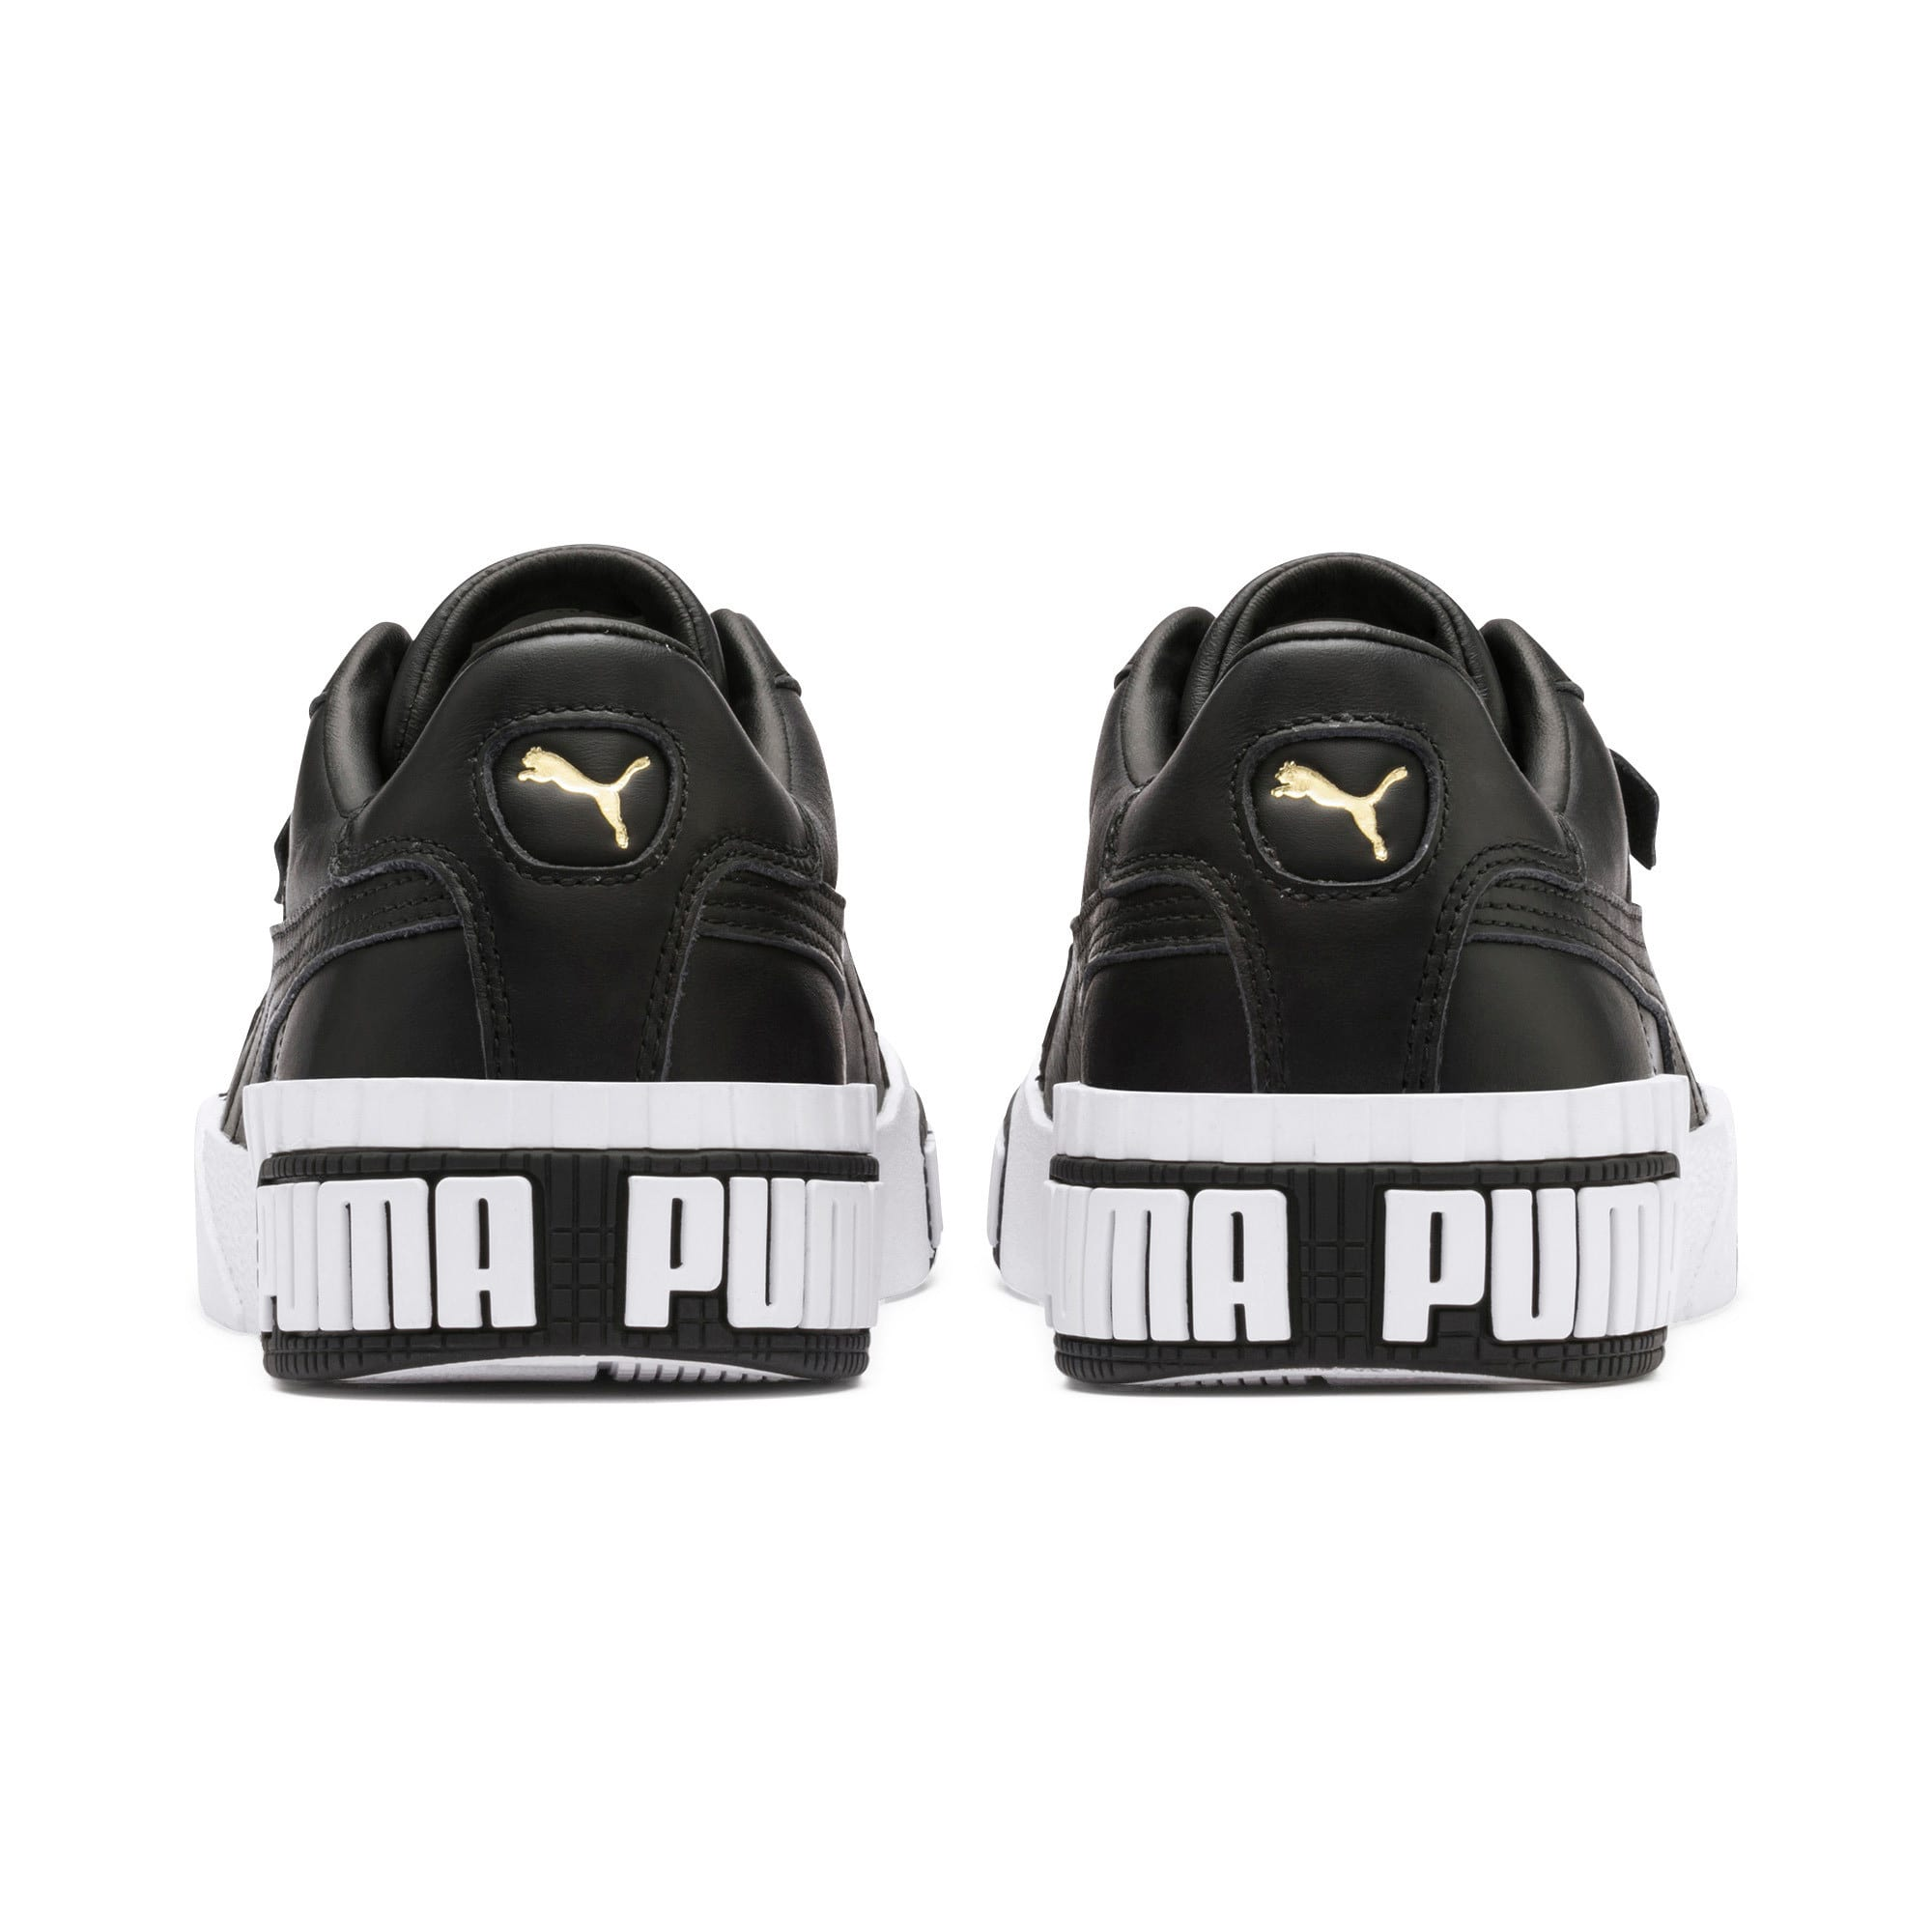 Thumbnail 4 of Damskie buty sportowe Cali Bold, Puma Black-Metallic Gold, medium